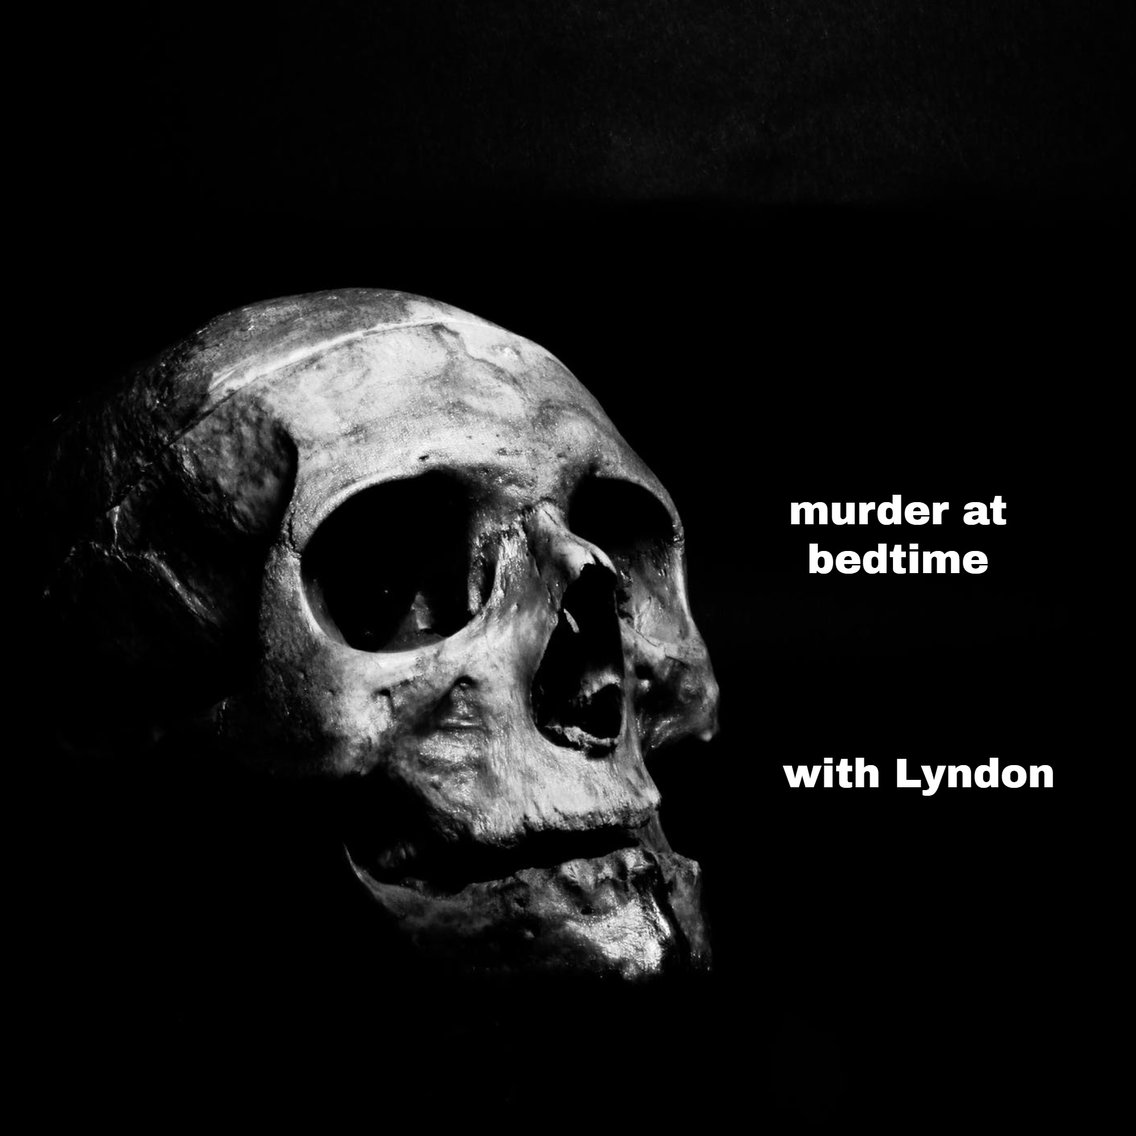 Murder at bedtime with Lyndon - Cover Image